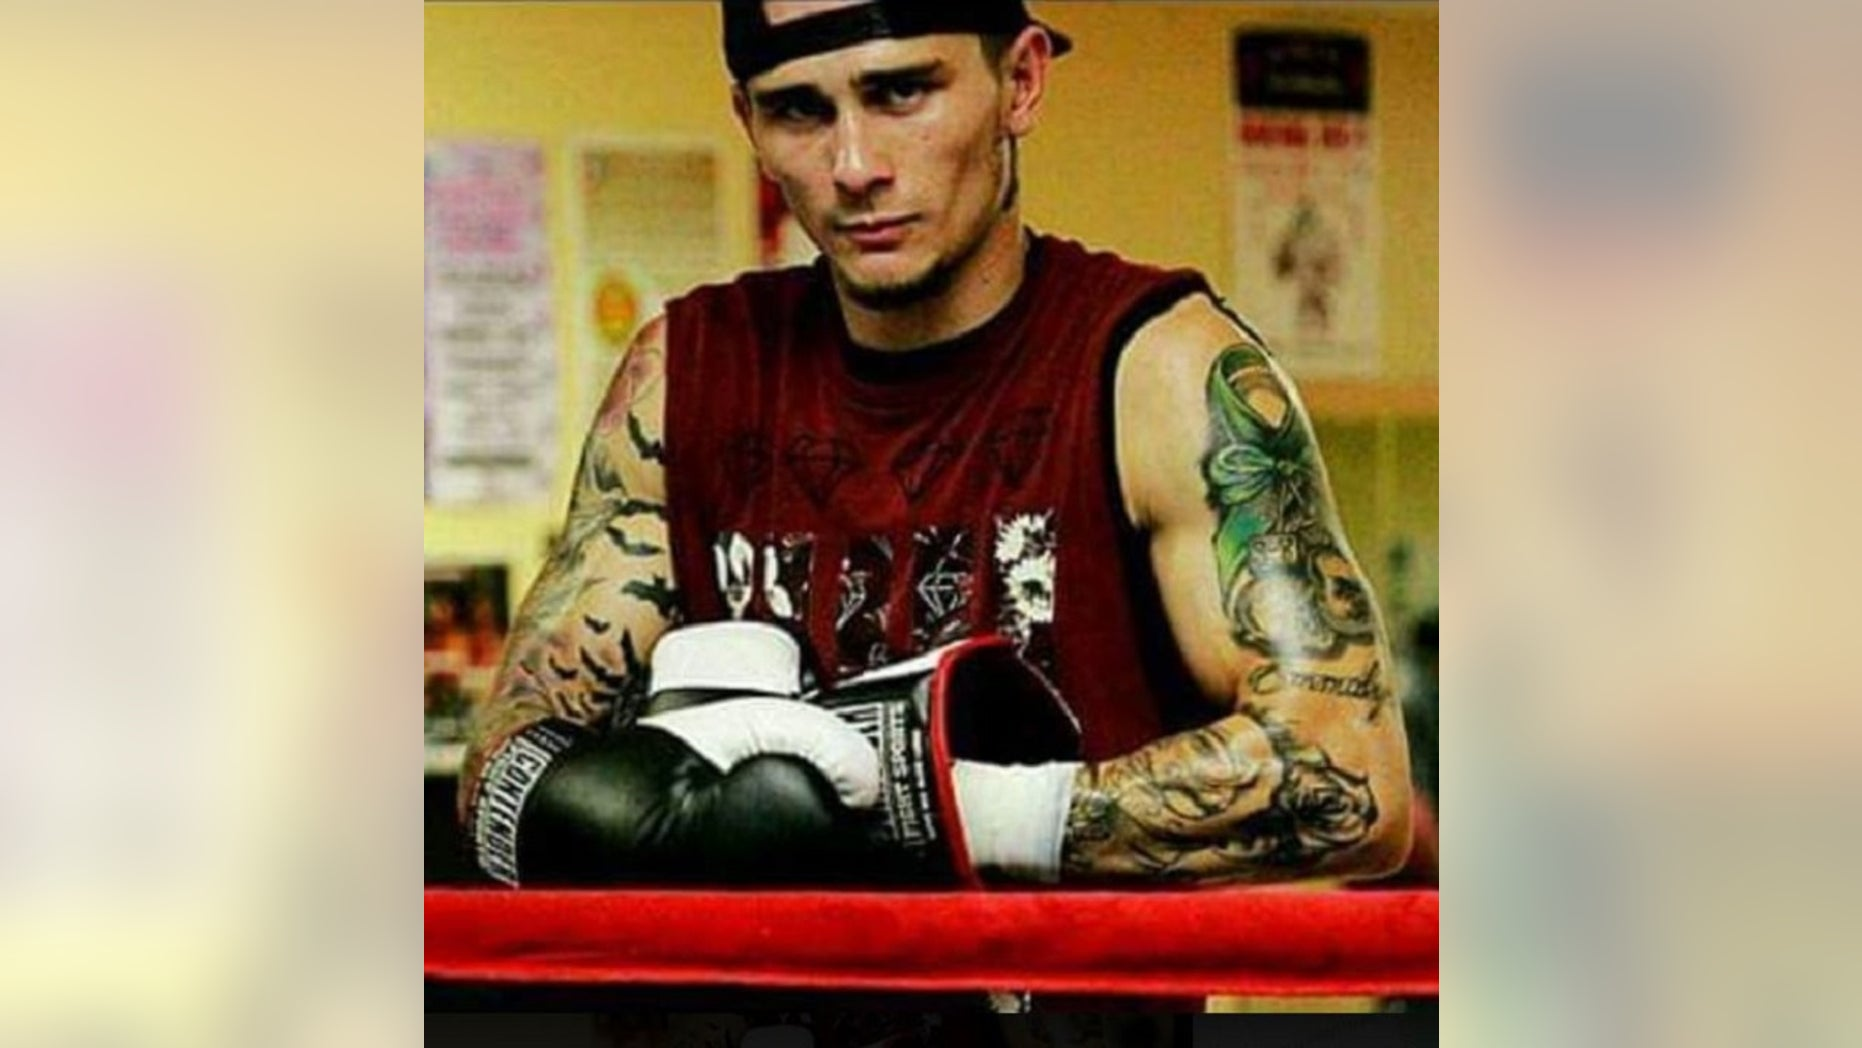 John VanMeter, died Wednesday, began boxing professionally in 2016 and had a 2-4 record, according to BoxRec. (Facebook)